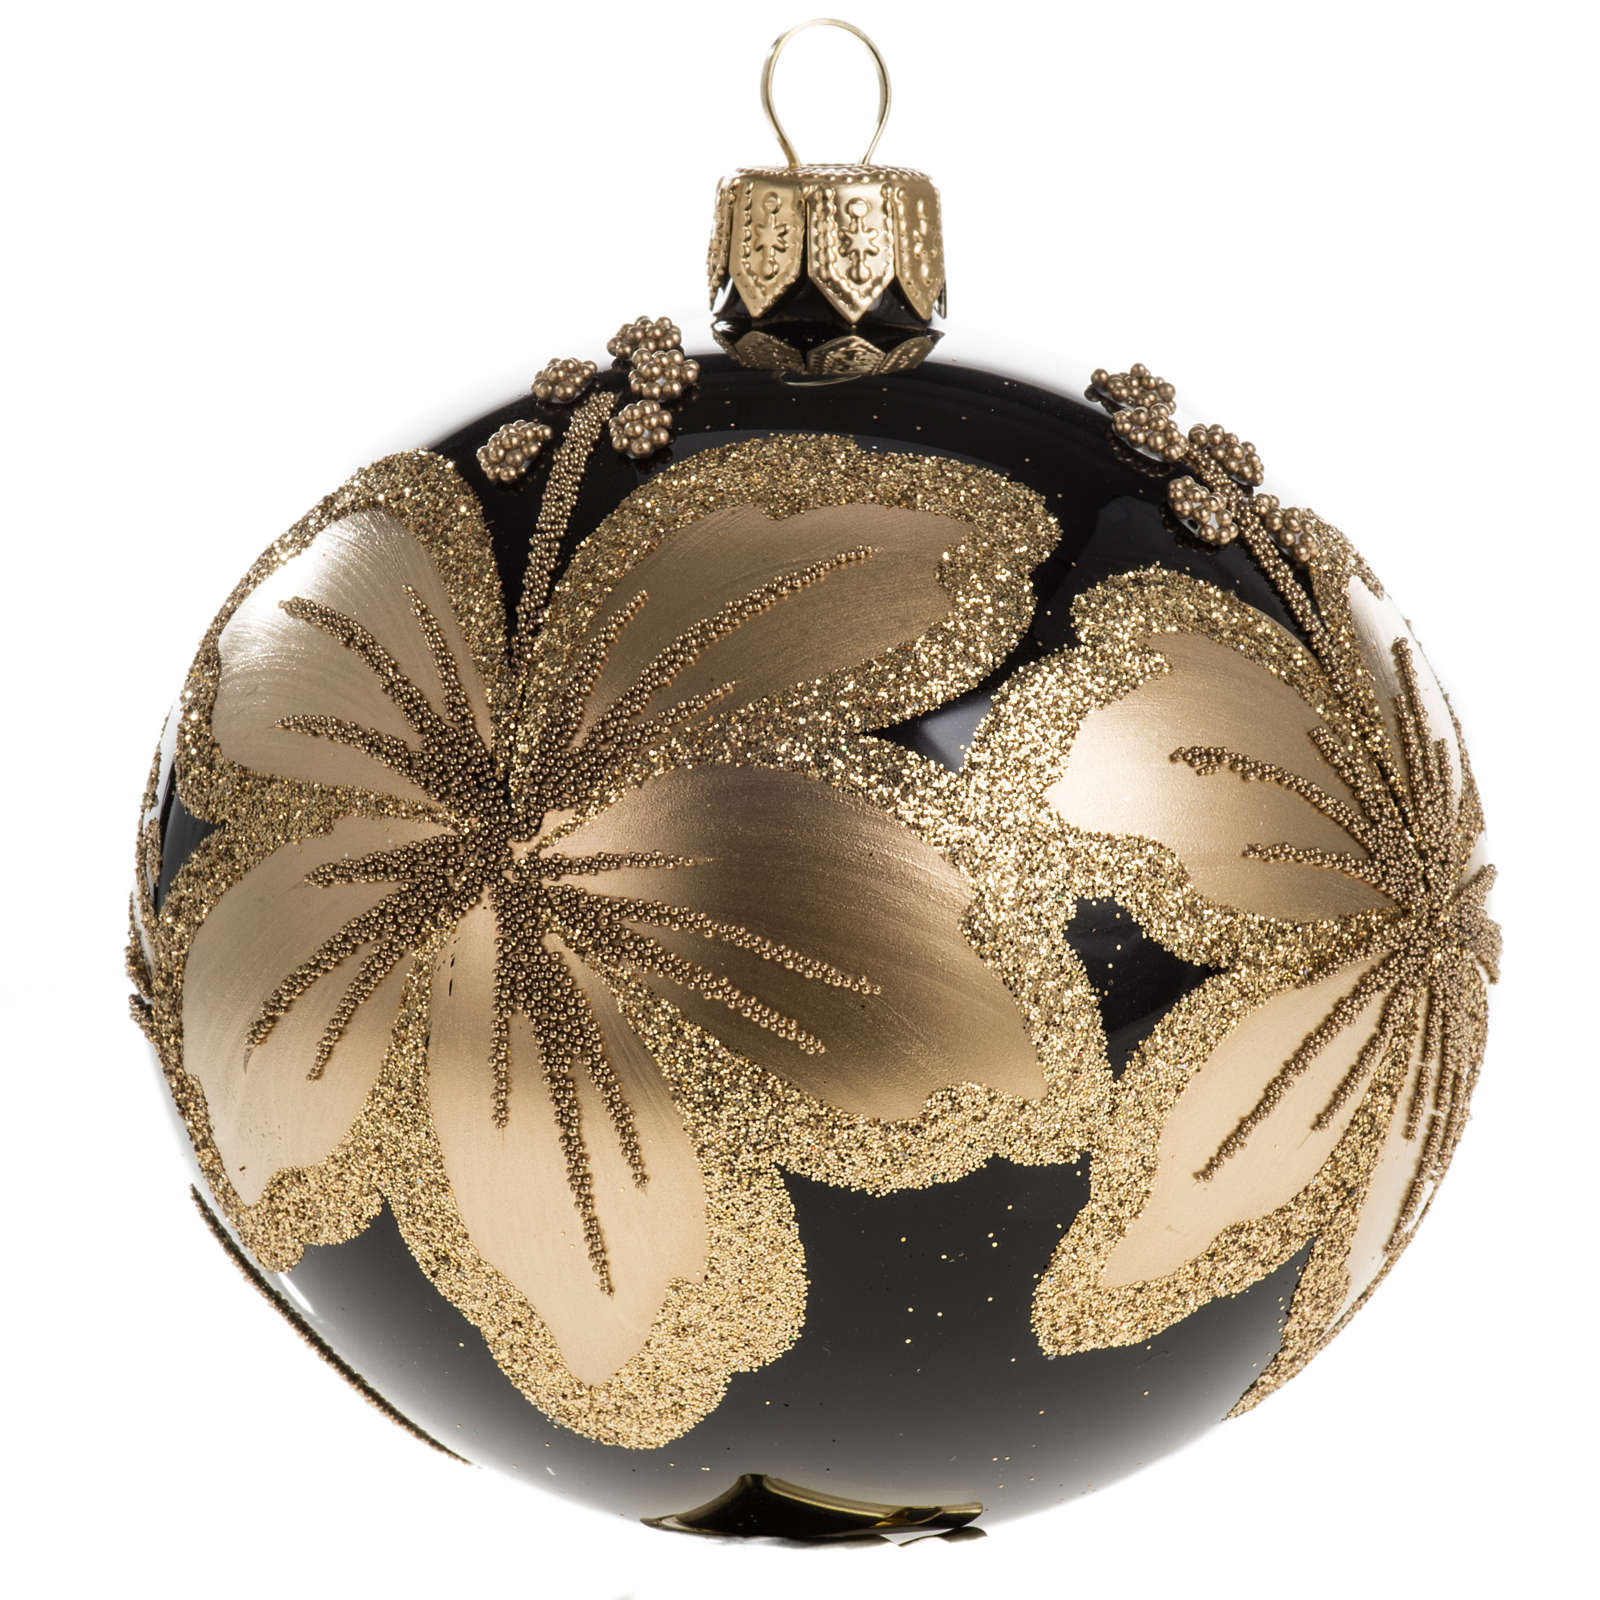 Christmas bauble, black glass with floral decorations, 8cm 4